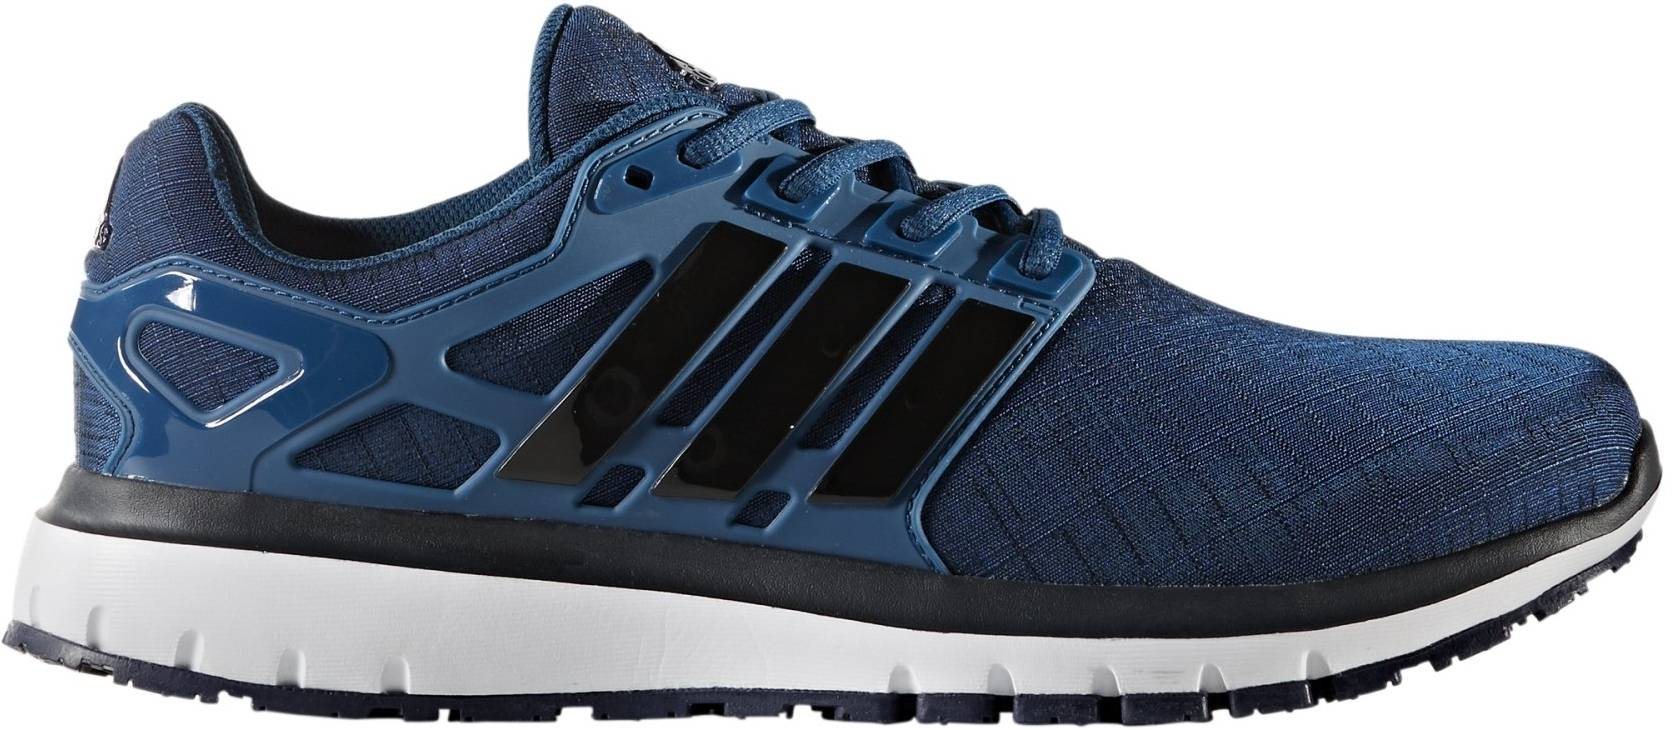 Review of Adidas Energy Cloud